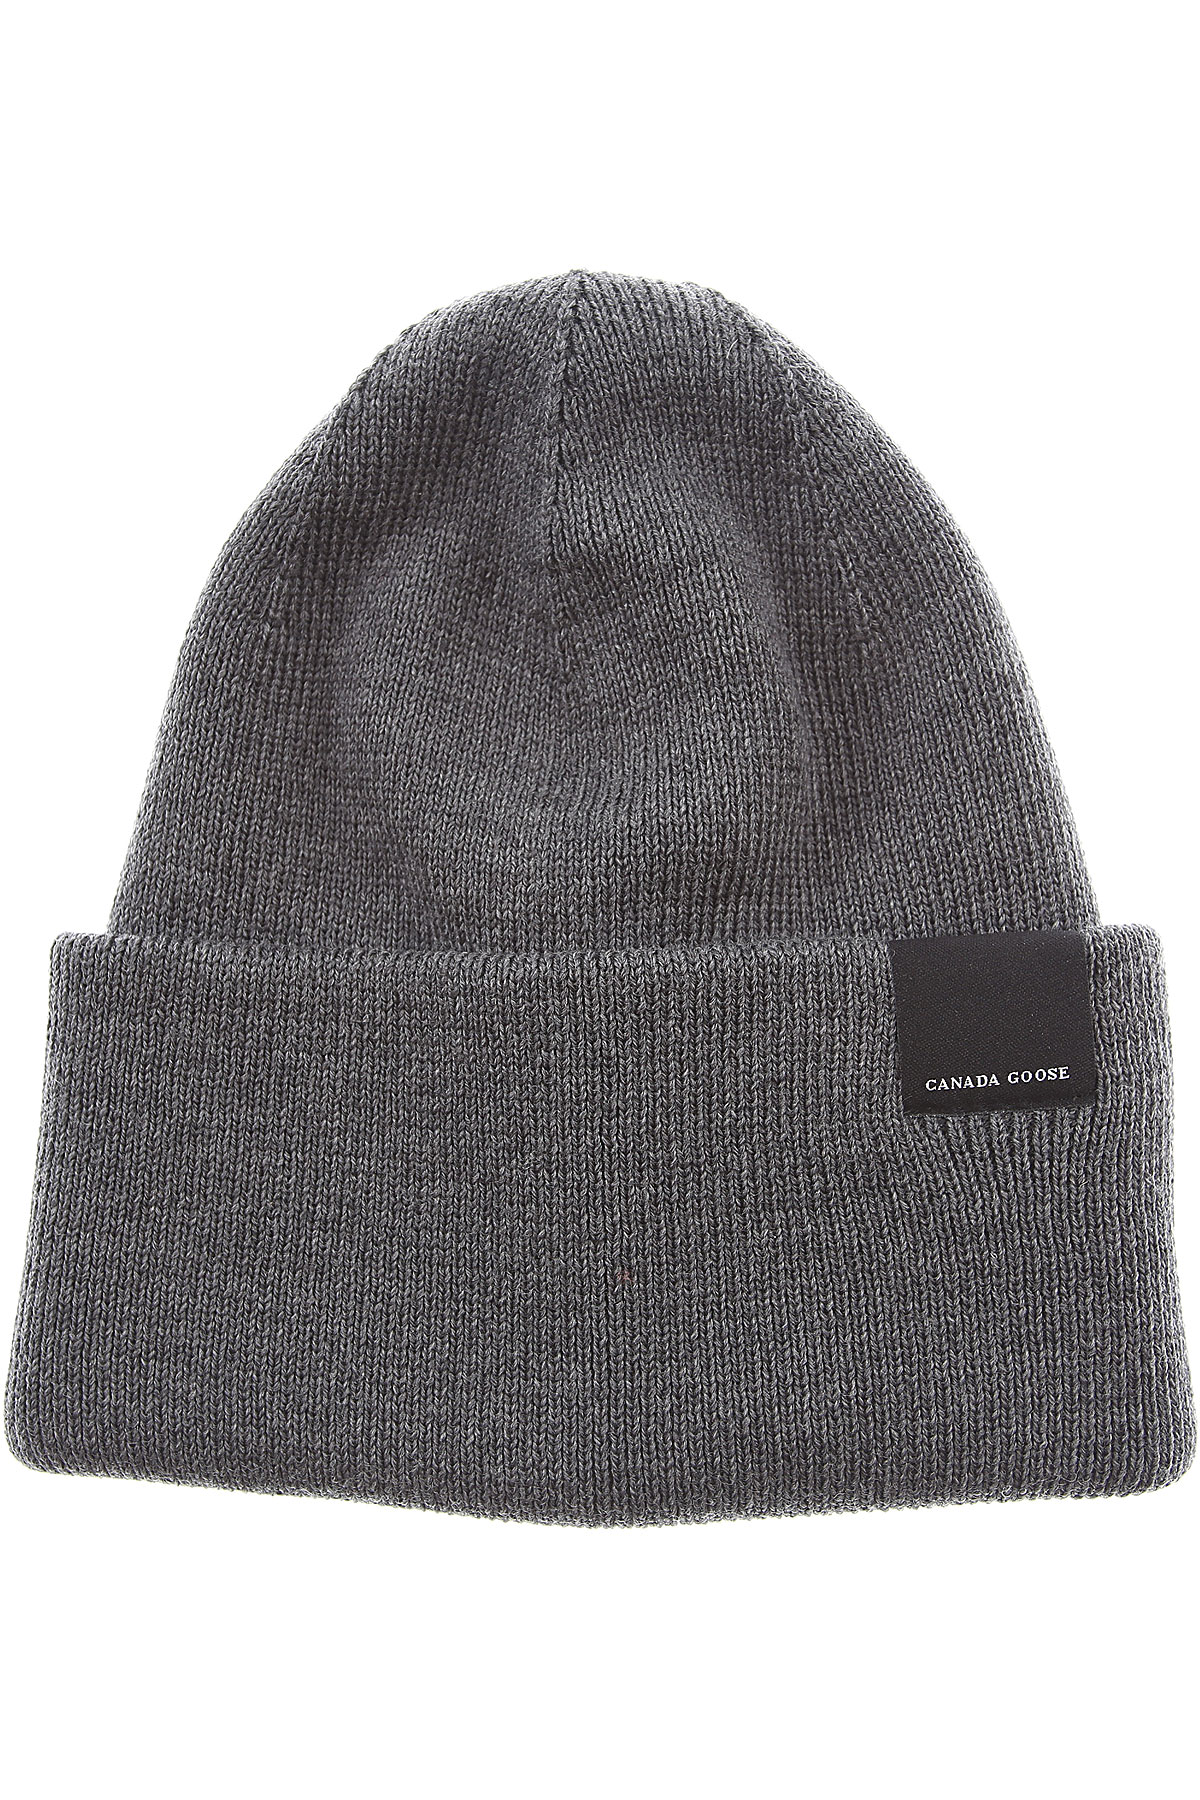 Image of Canada Goose Hat for Women, iron grey, Wool, 2017